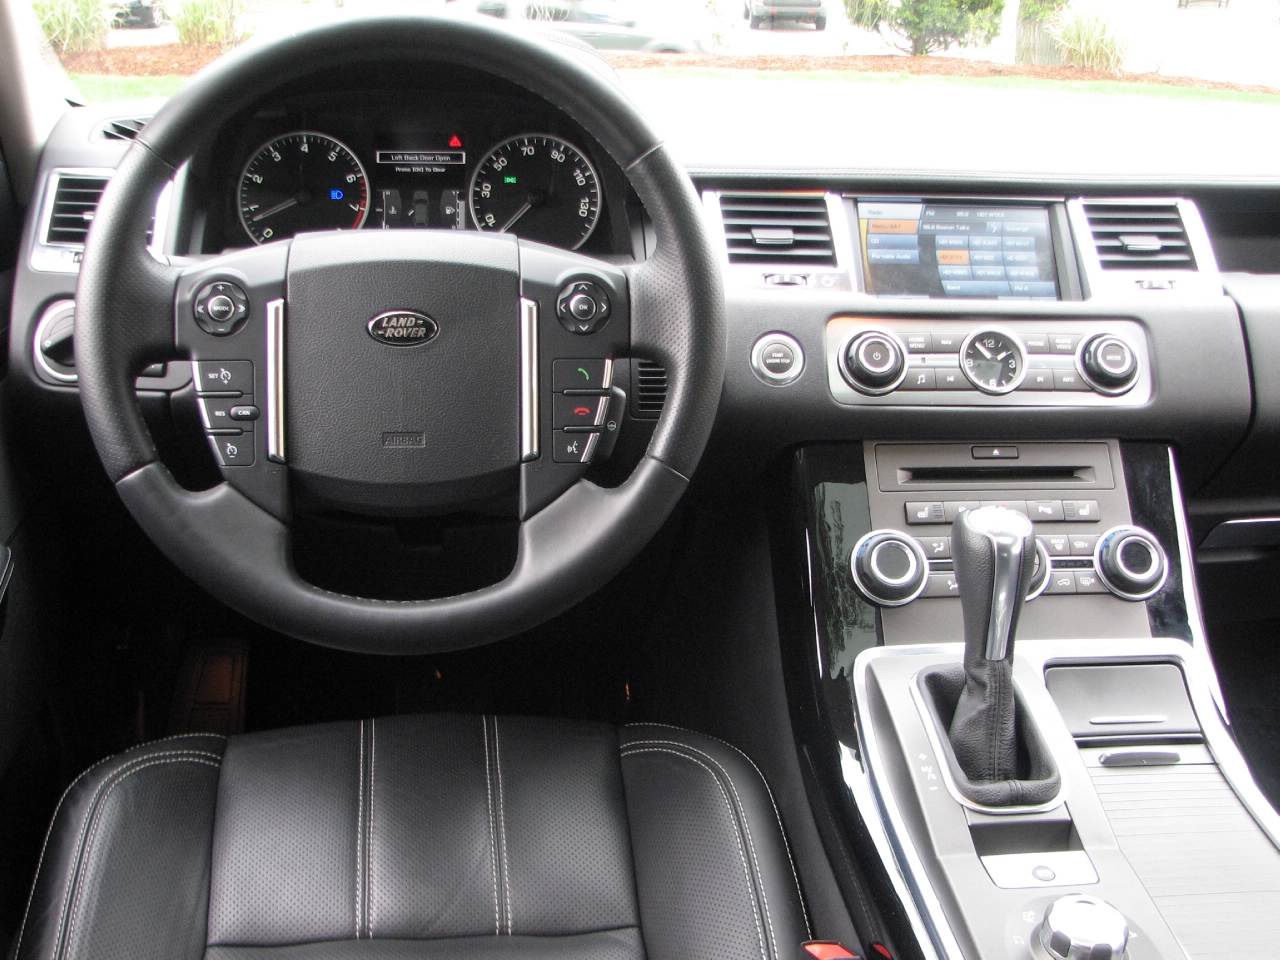 Who Owns Land Rover >> 2010 Land Rover Range Rover Sport - Pictures - CarGurus